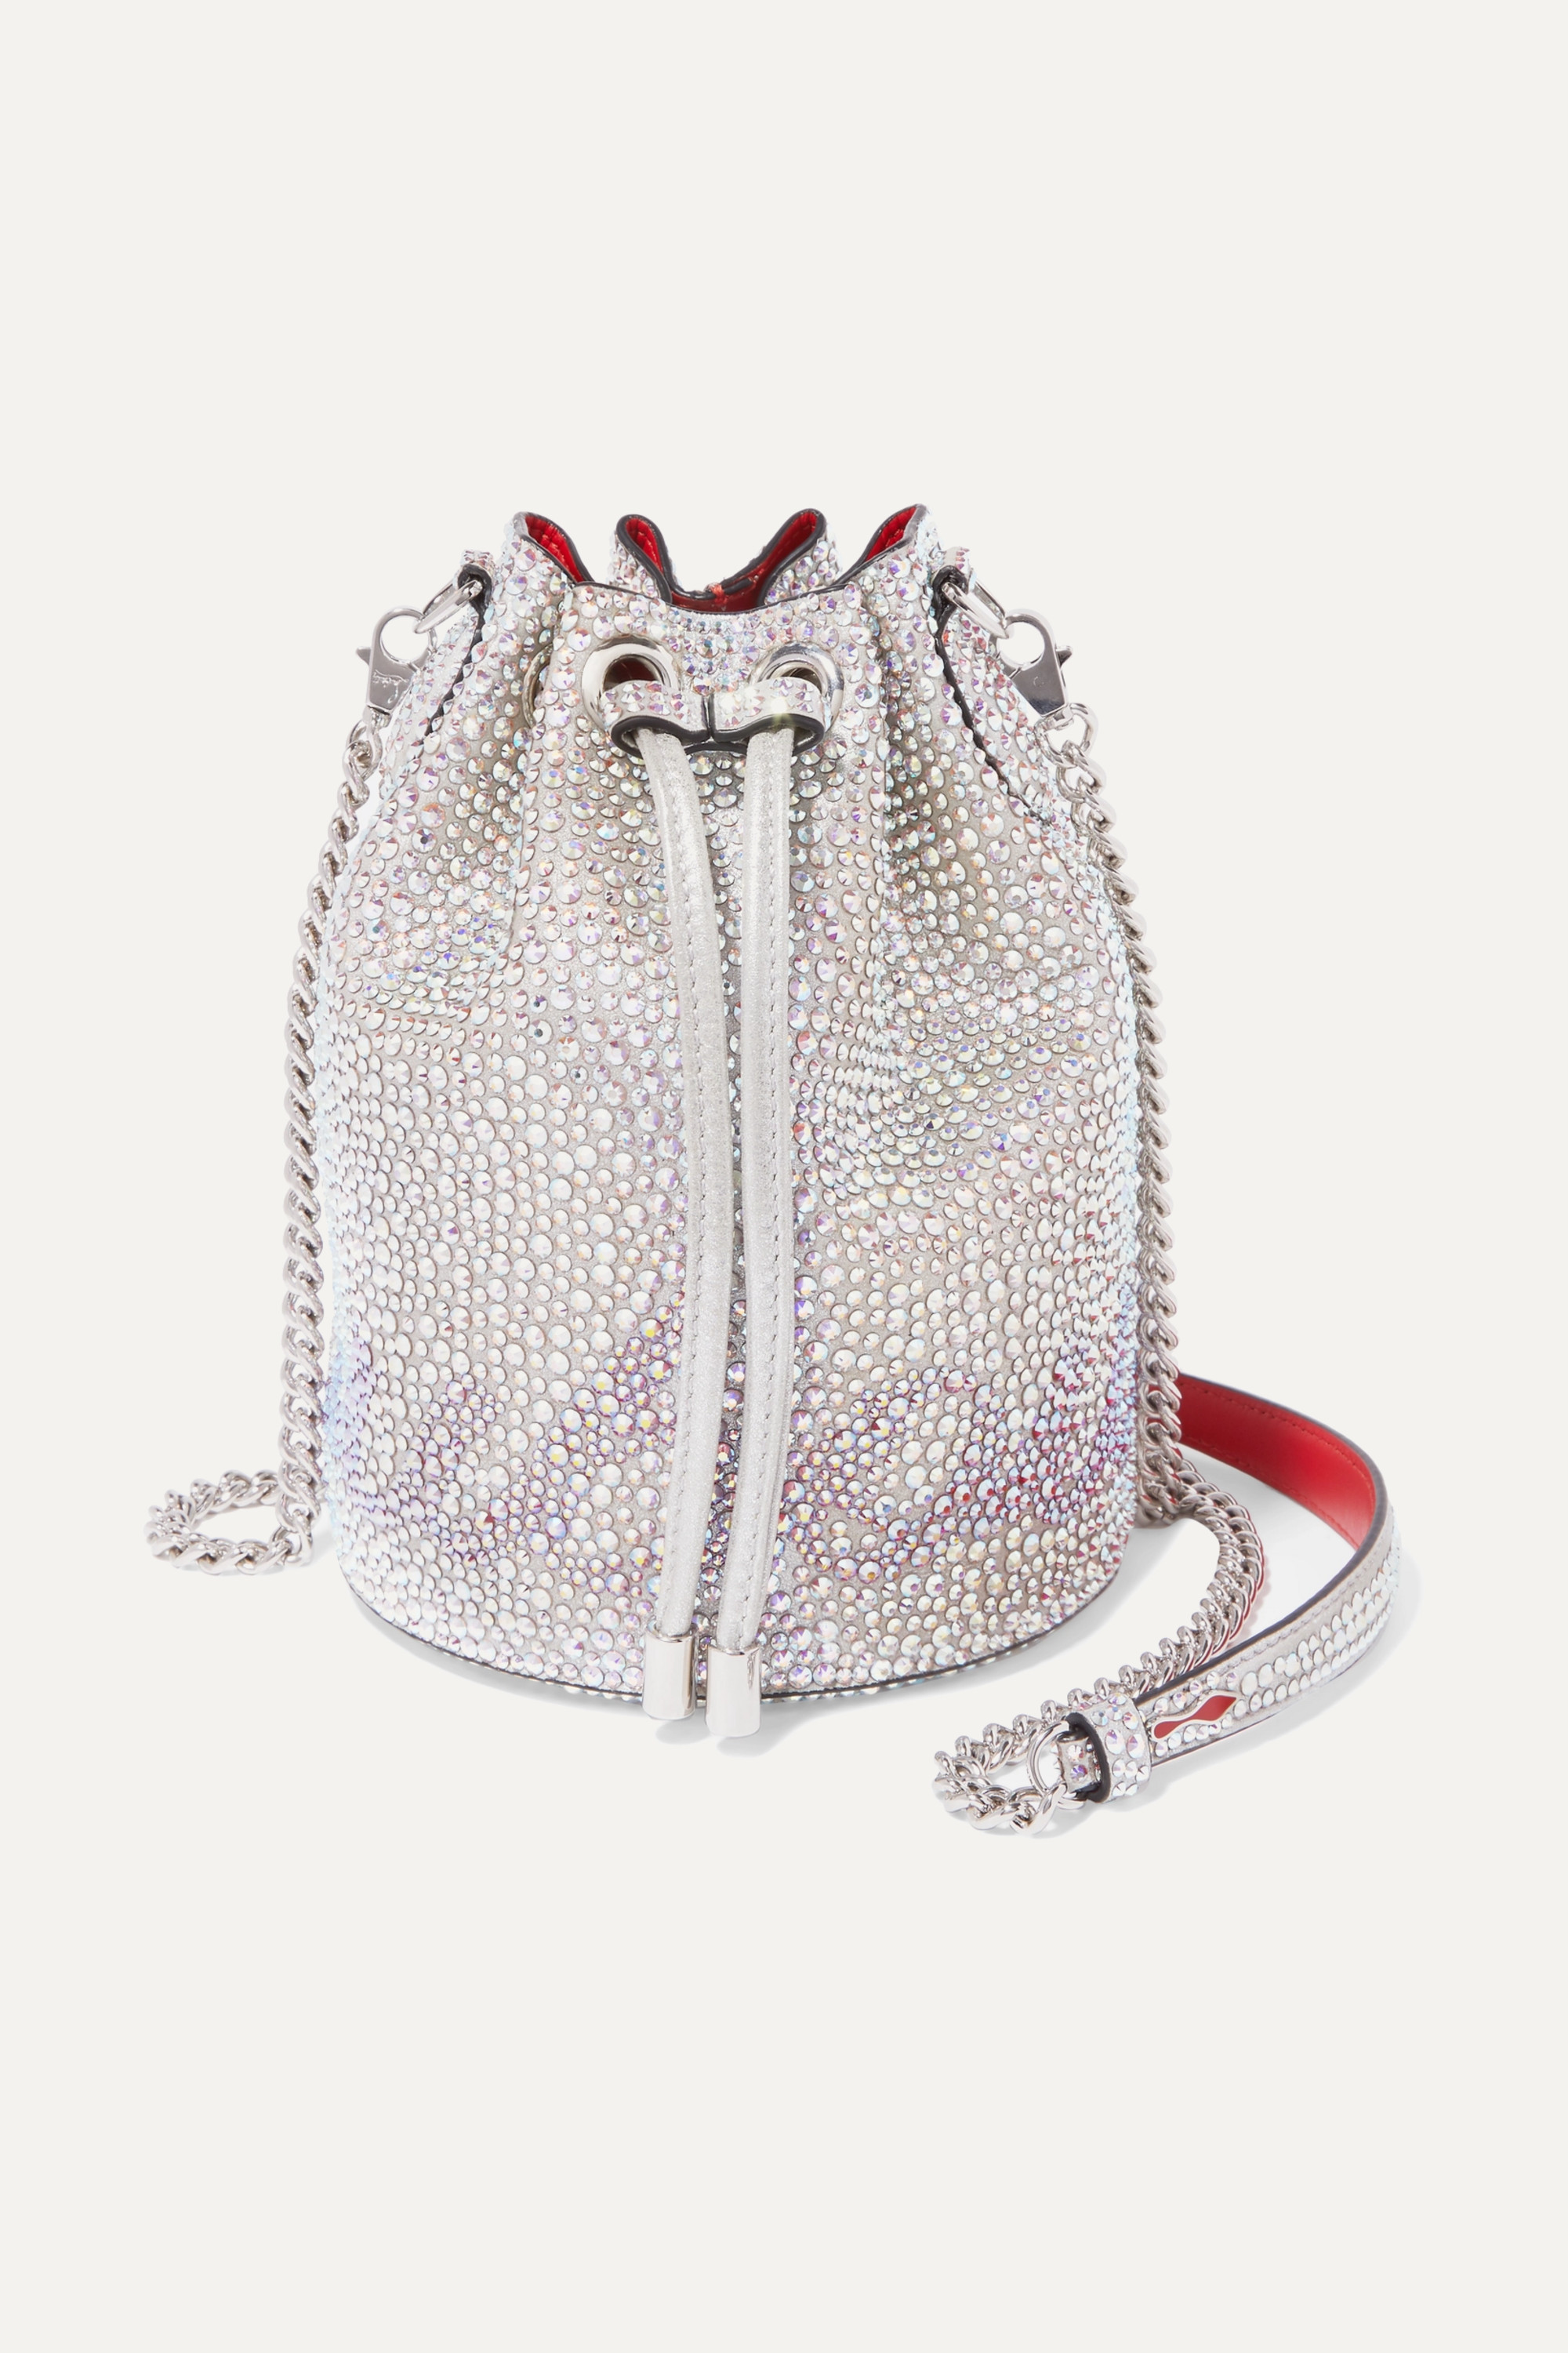 Christian Louboutin Marie Jane crystal-embellished suede and leather bucket bag